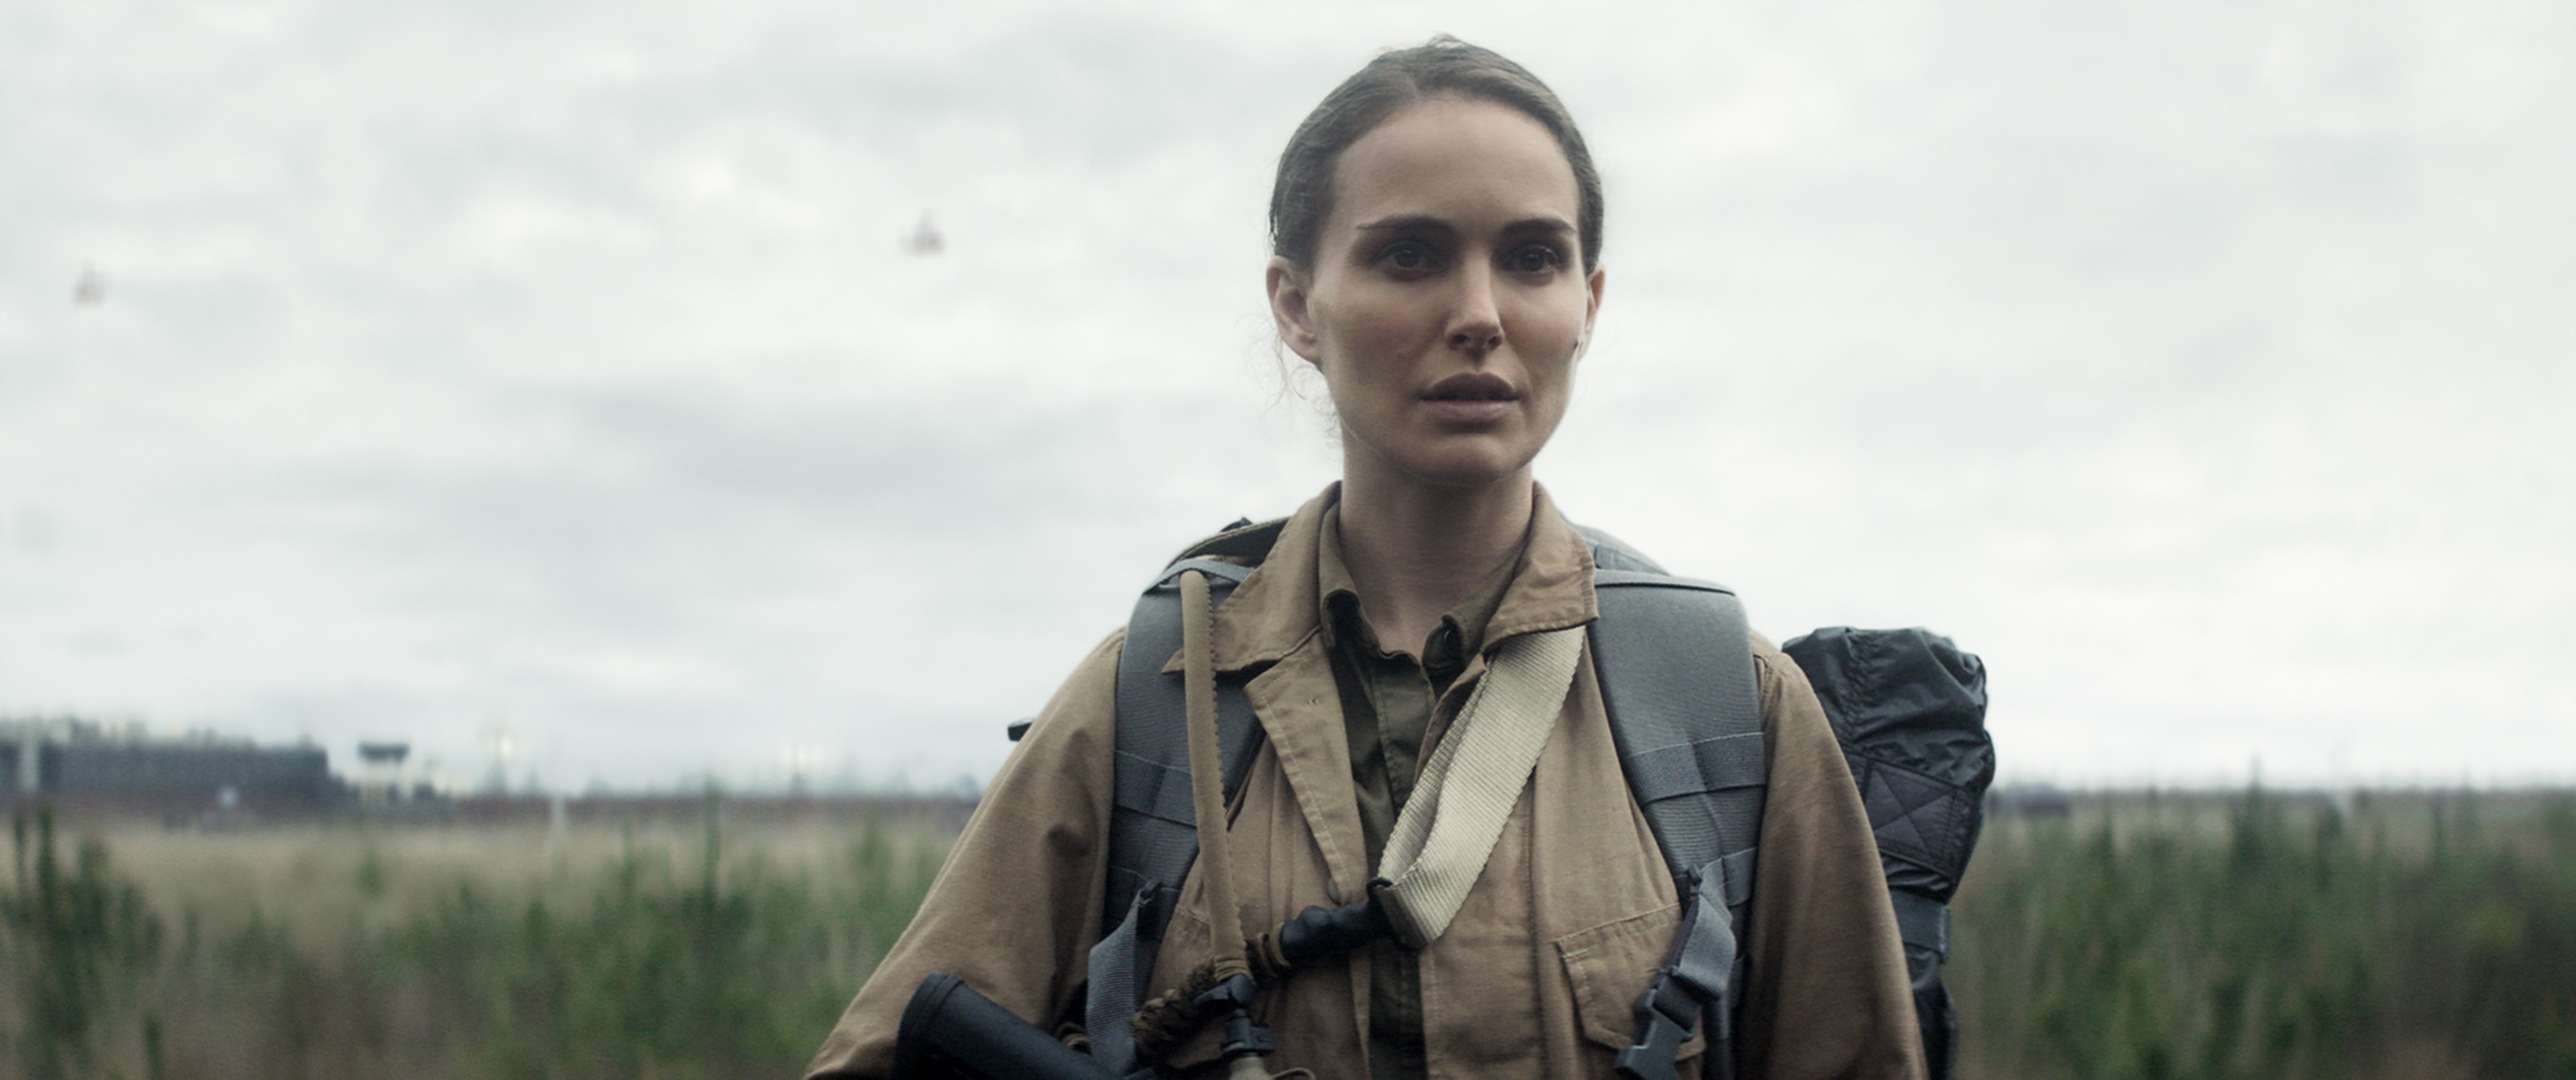 Natalie Portman plays Lena in Annihilation from Paramount Pictures and Skydance.